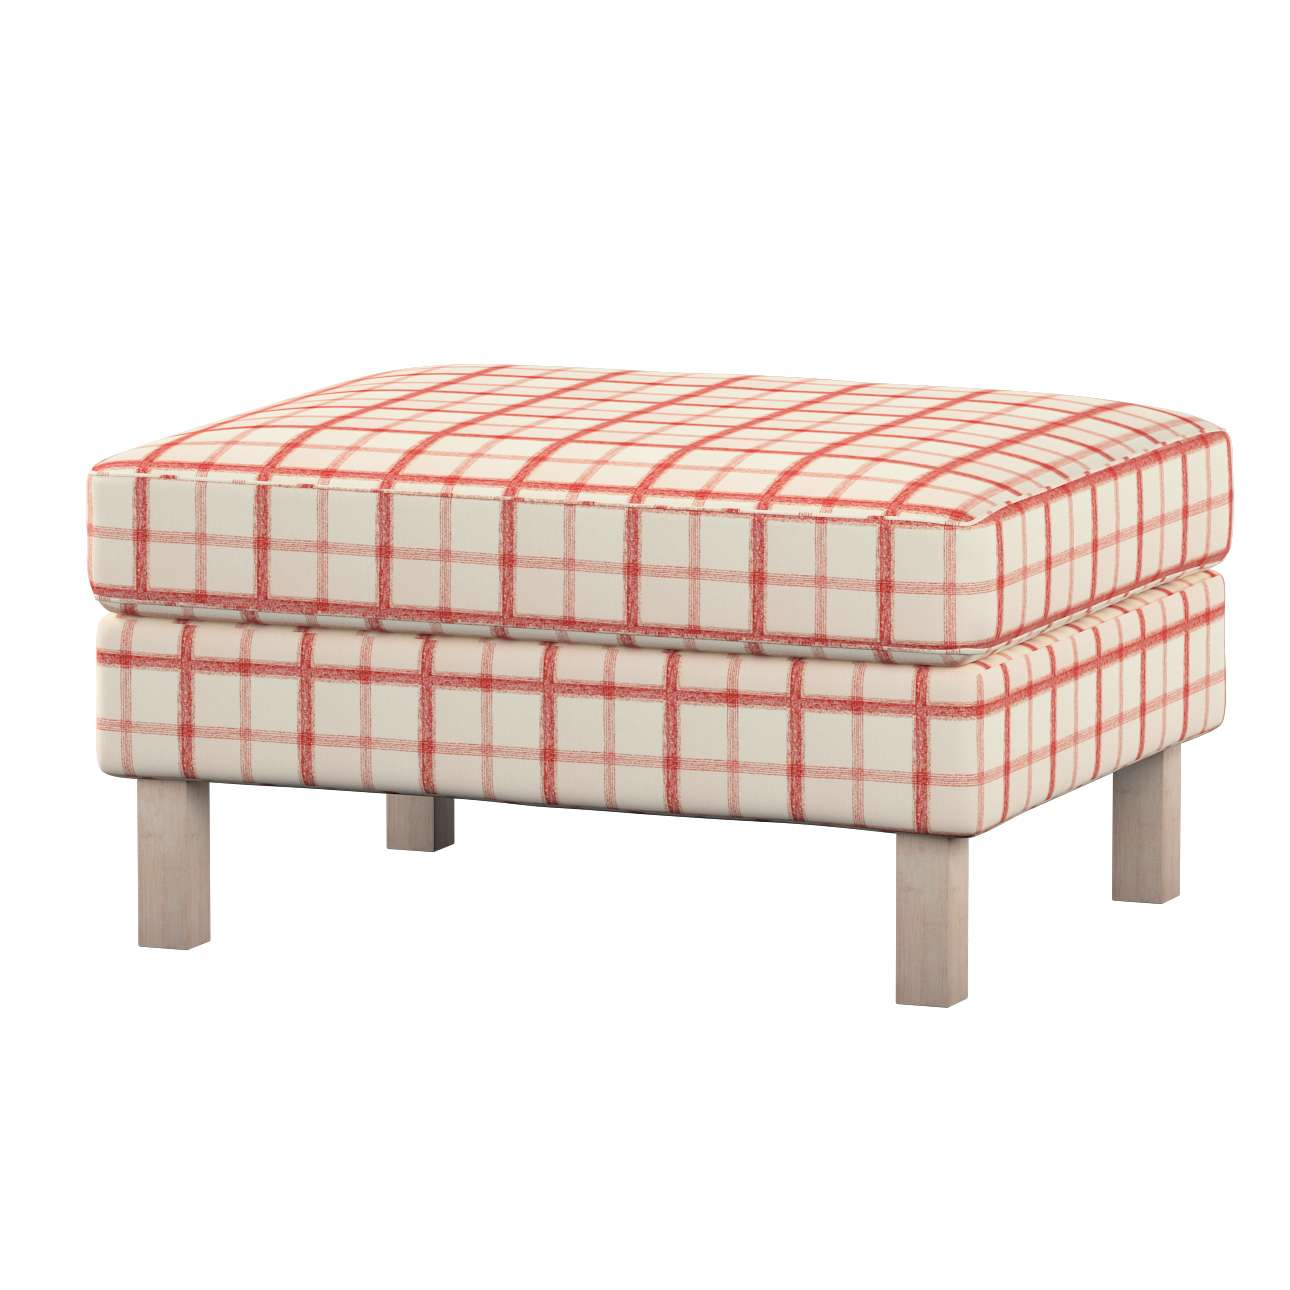 Karlstad footstool cover Karlstad footstool cover in collection Avinon, fabric: 131-15